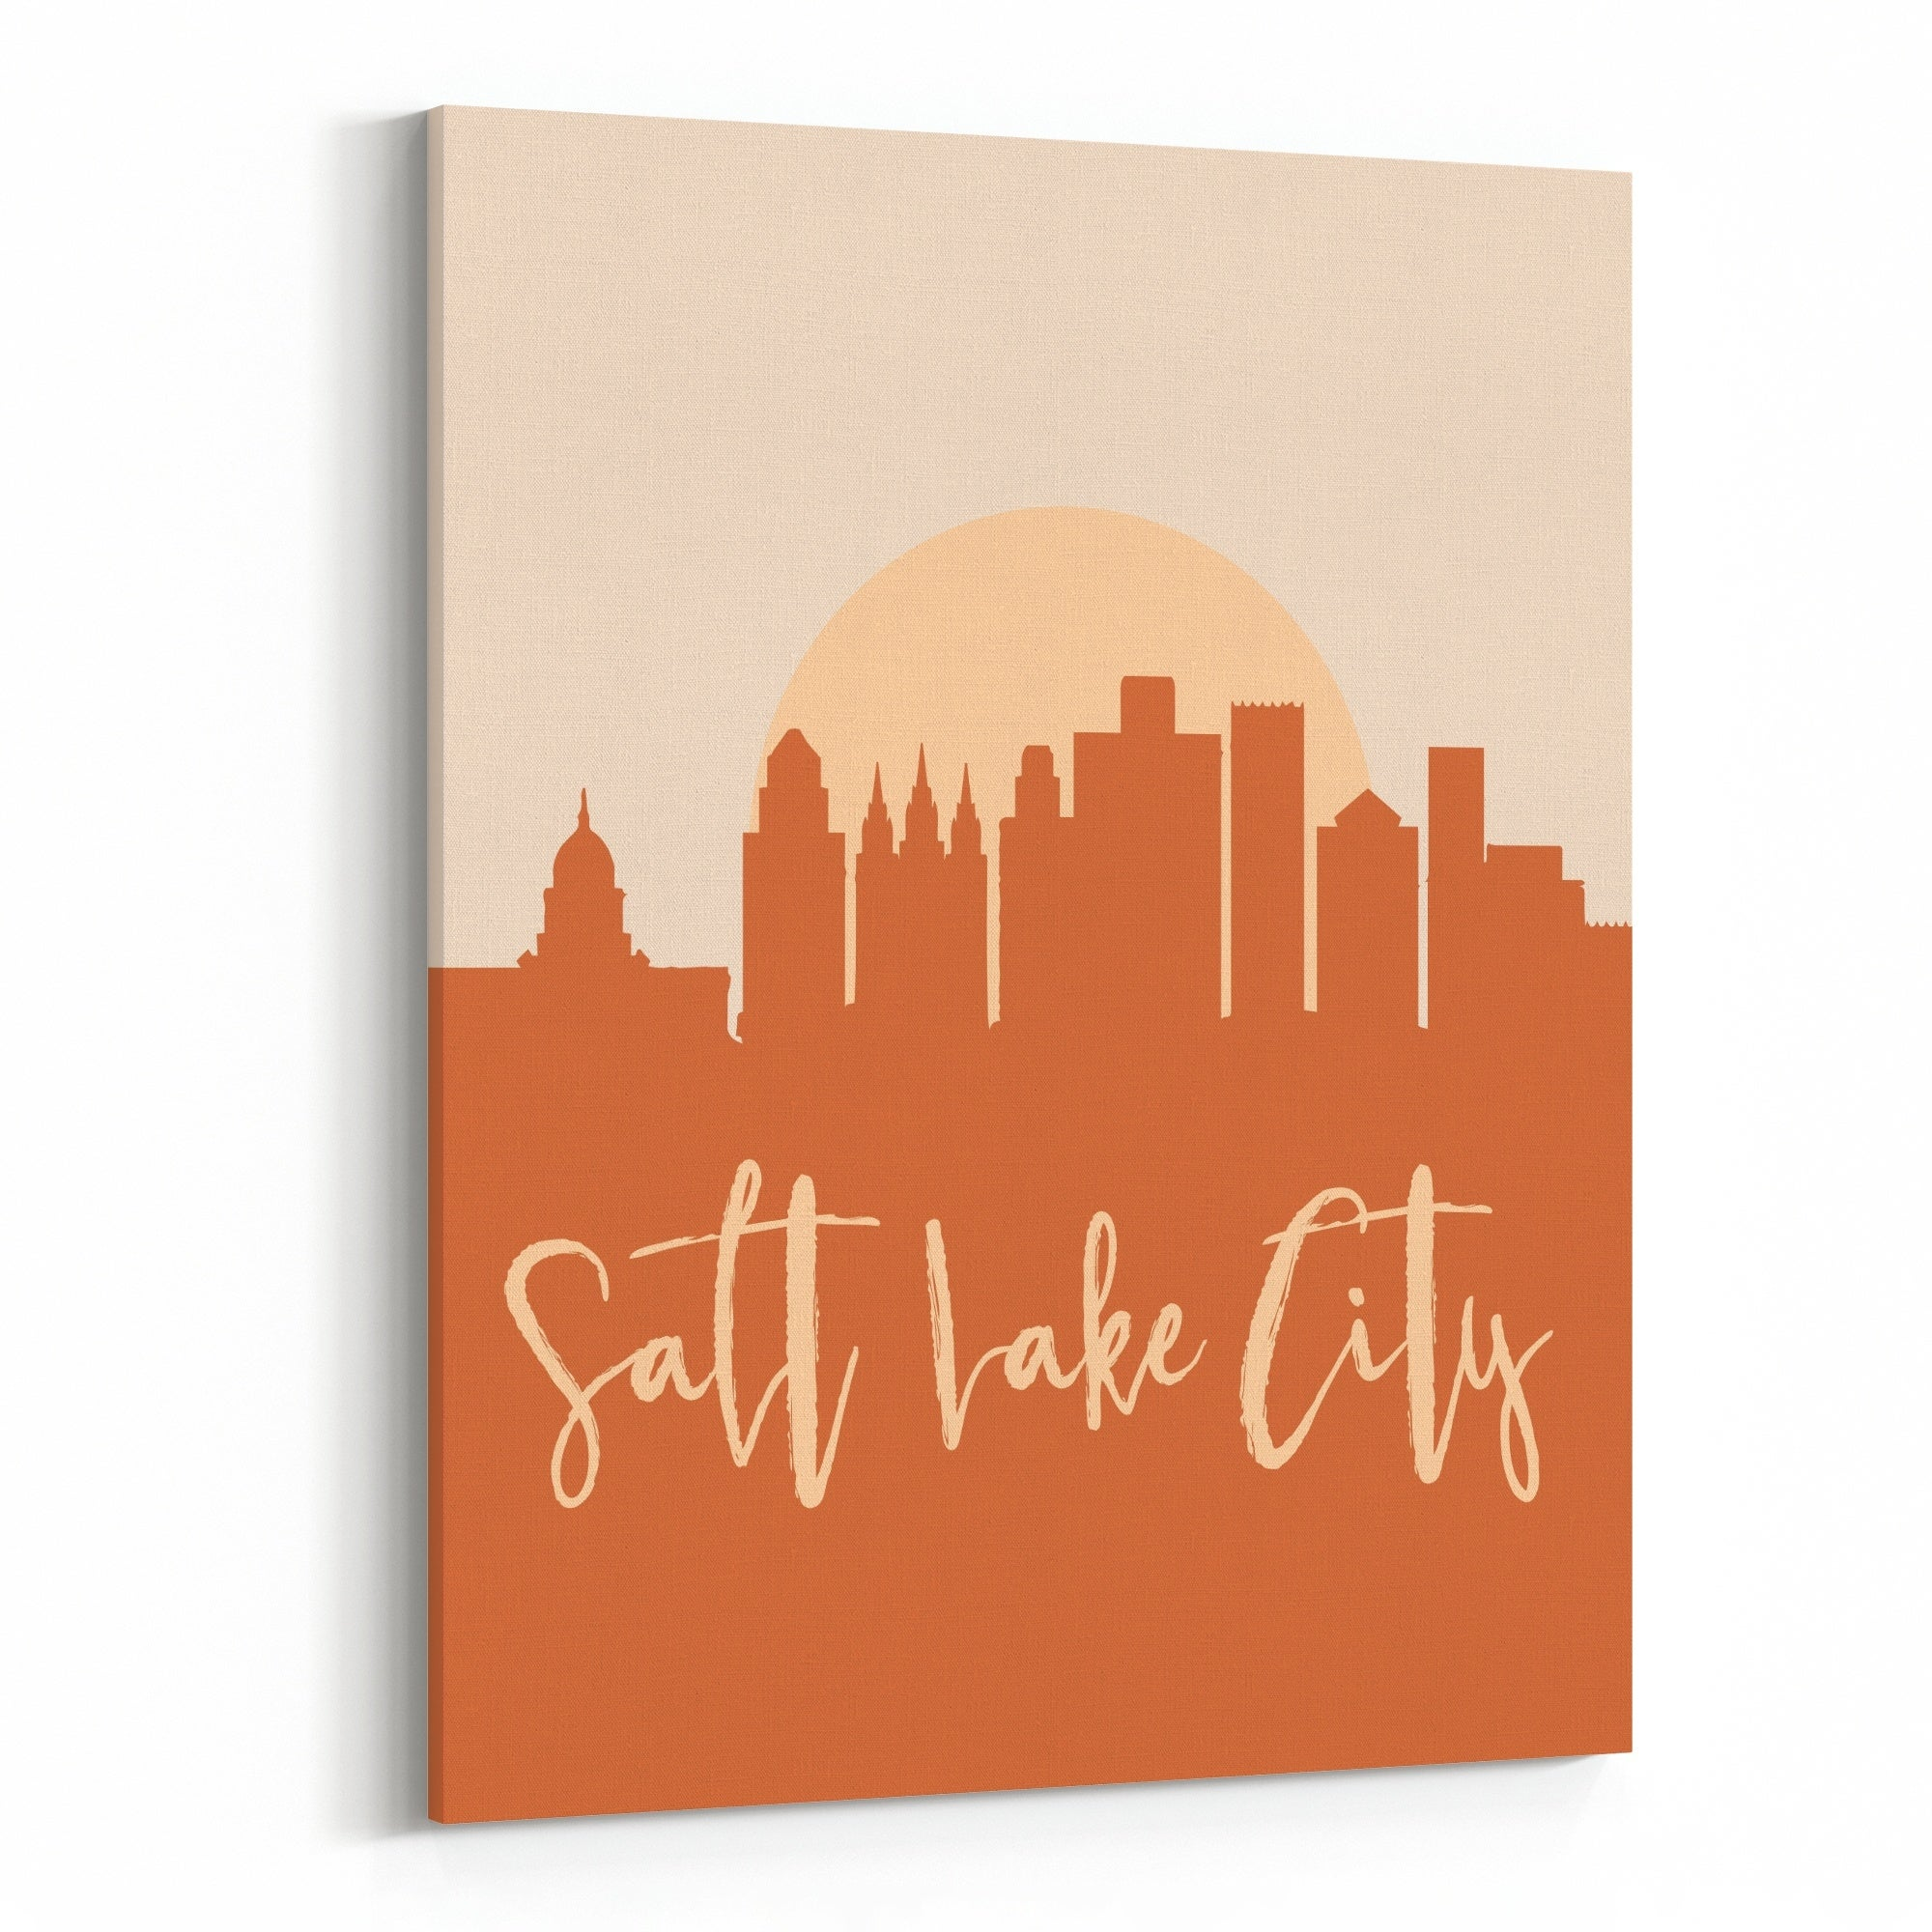 Salt Lake City Utah City Cityscape Canvas Wall Art Print Overstock 31651678